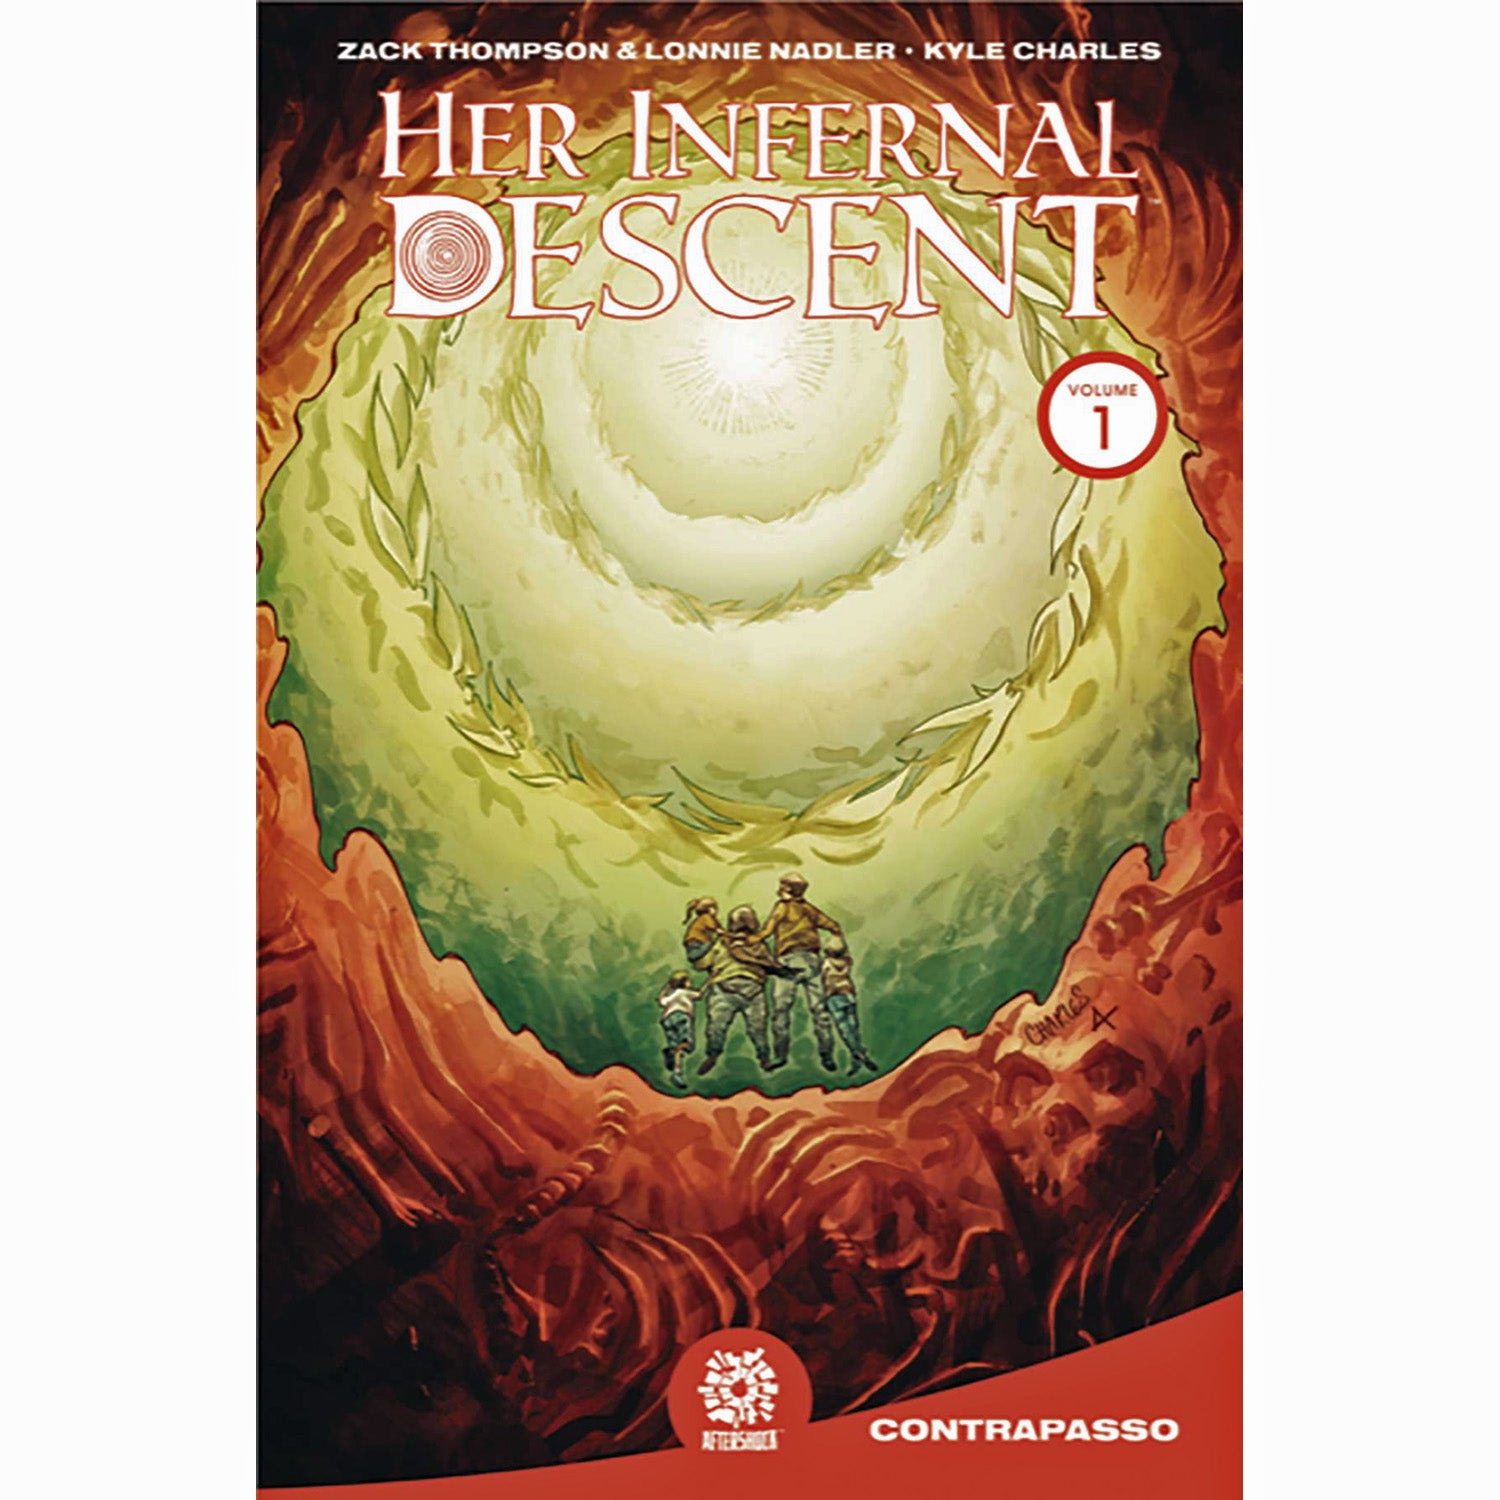 Her Infernal Descent Volume 1: Contrapasso